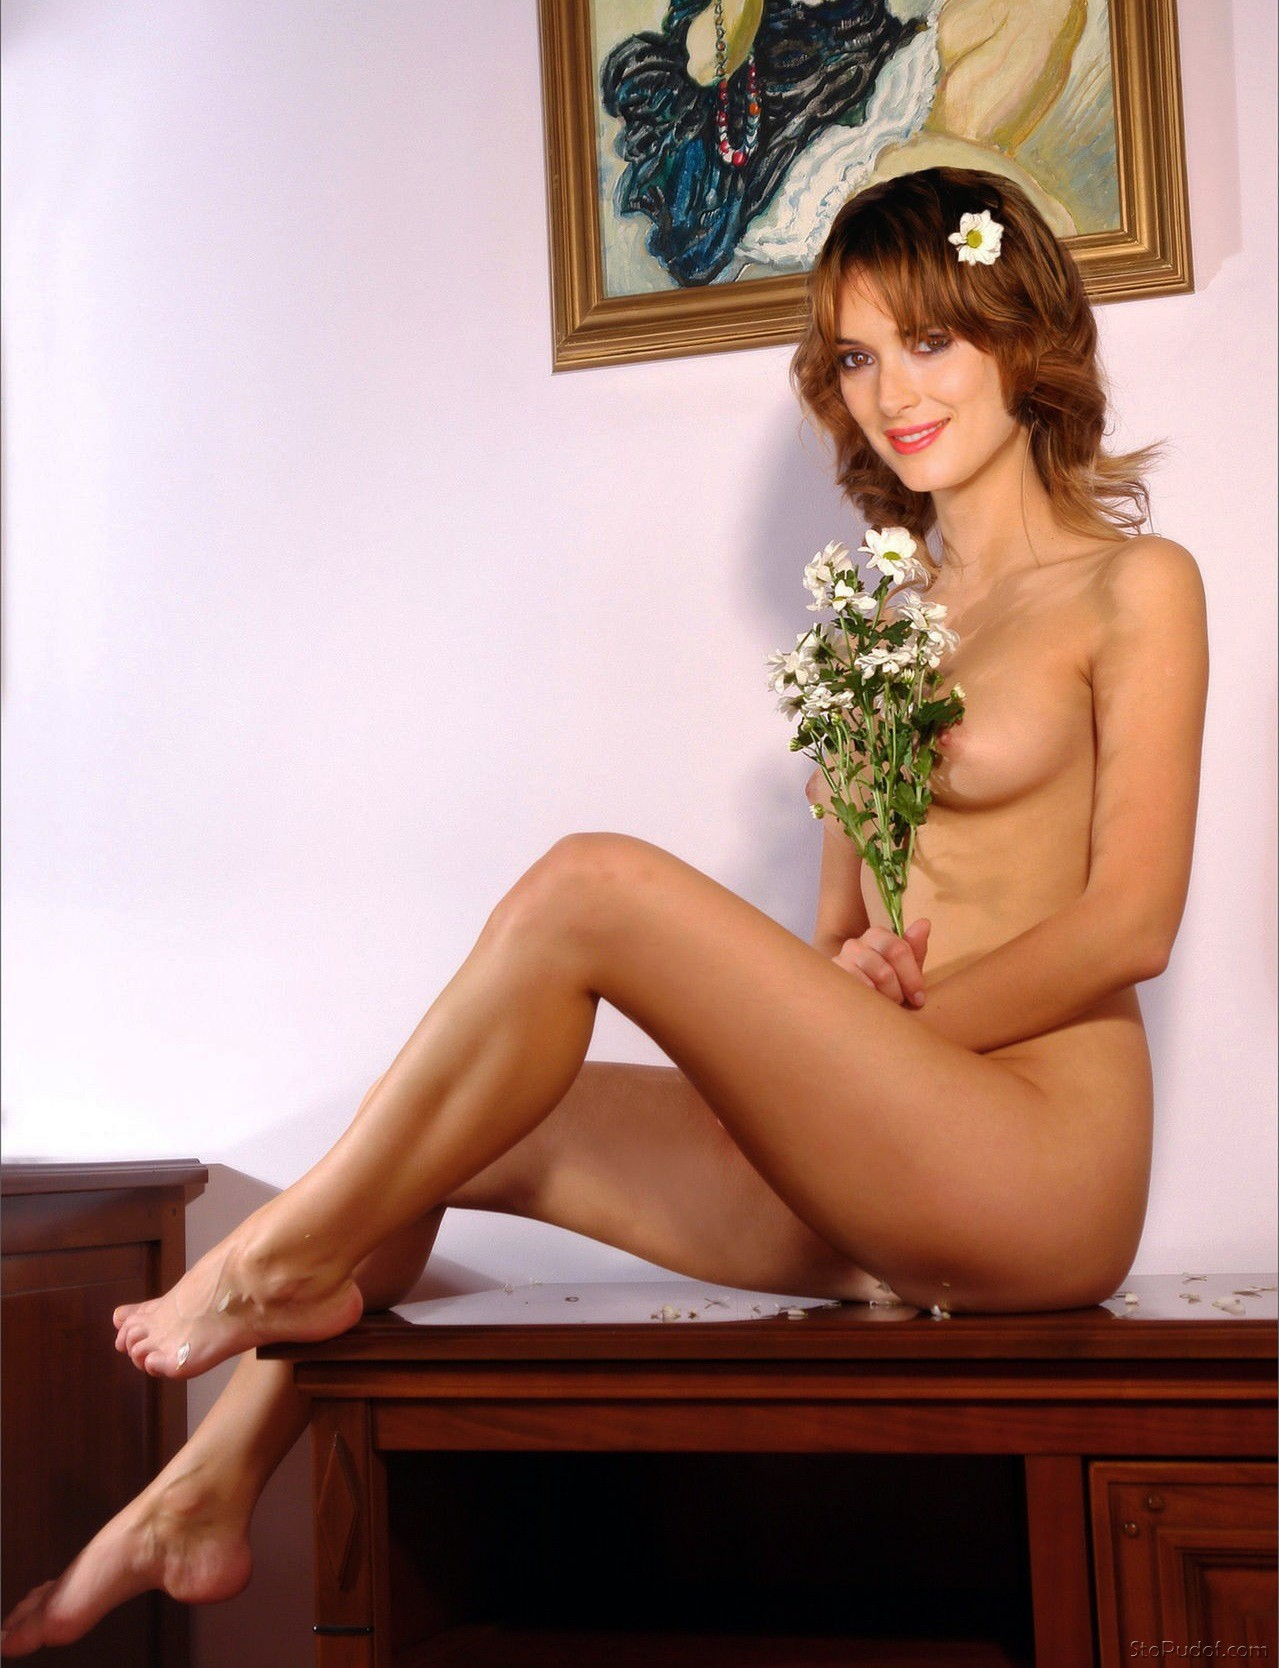 Winona Ryder nude pictures all - UkPhotoSafari